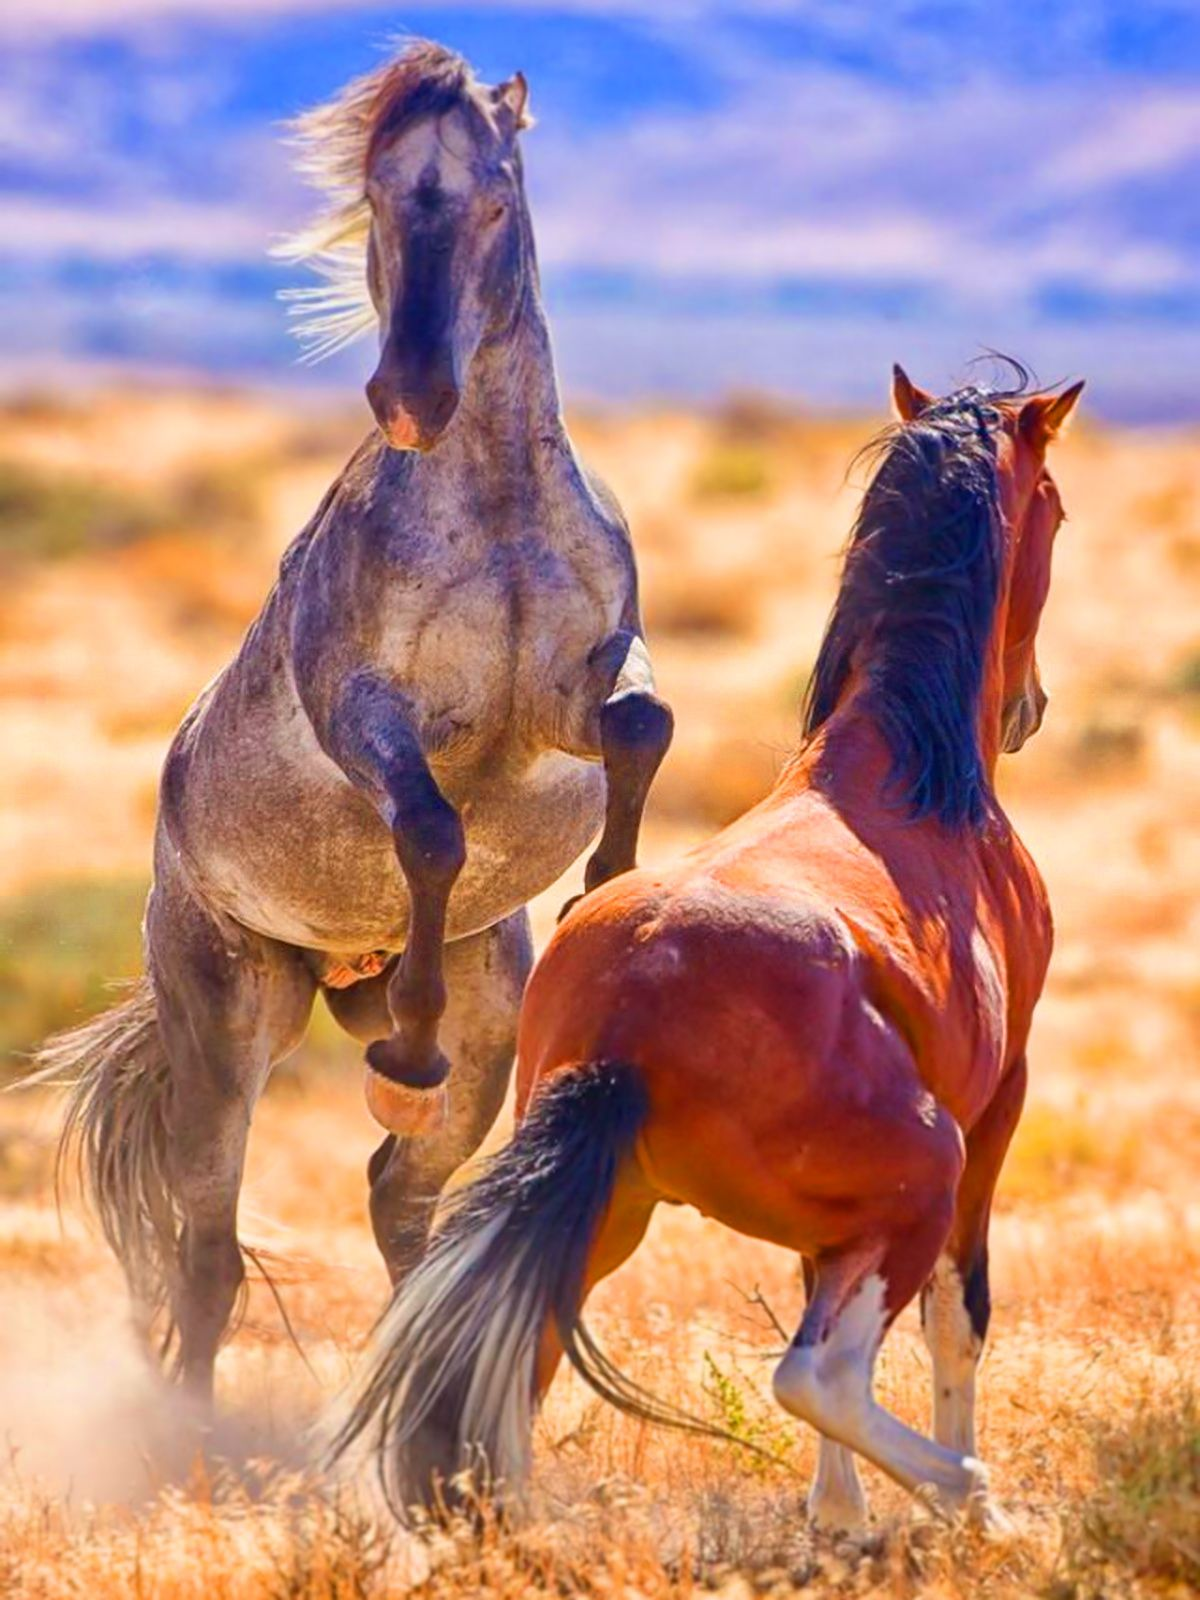 Fighting of its own kind   arte   Pinterest   Caballos, Animales y ...